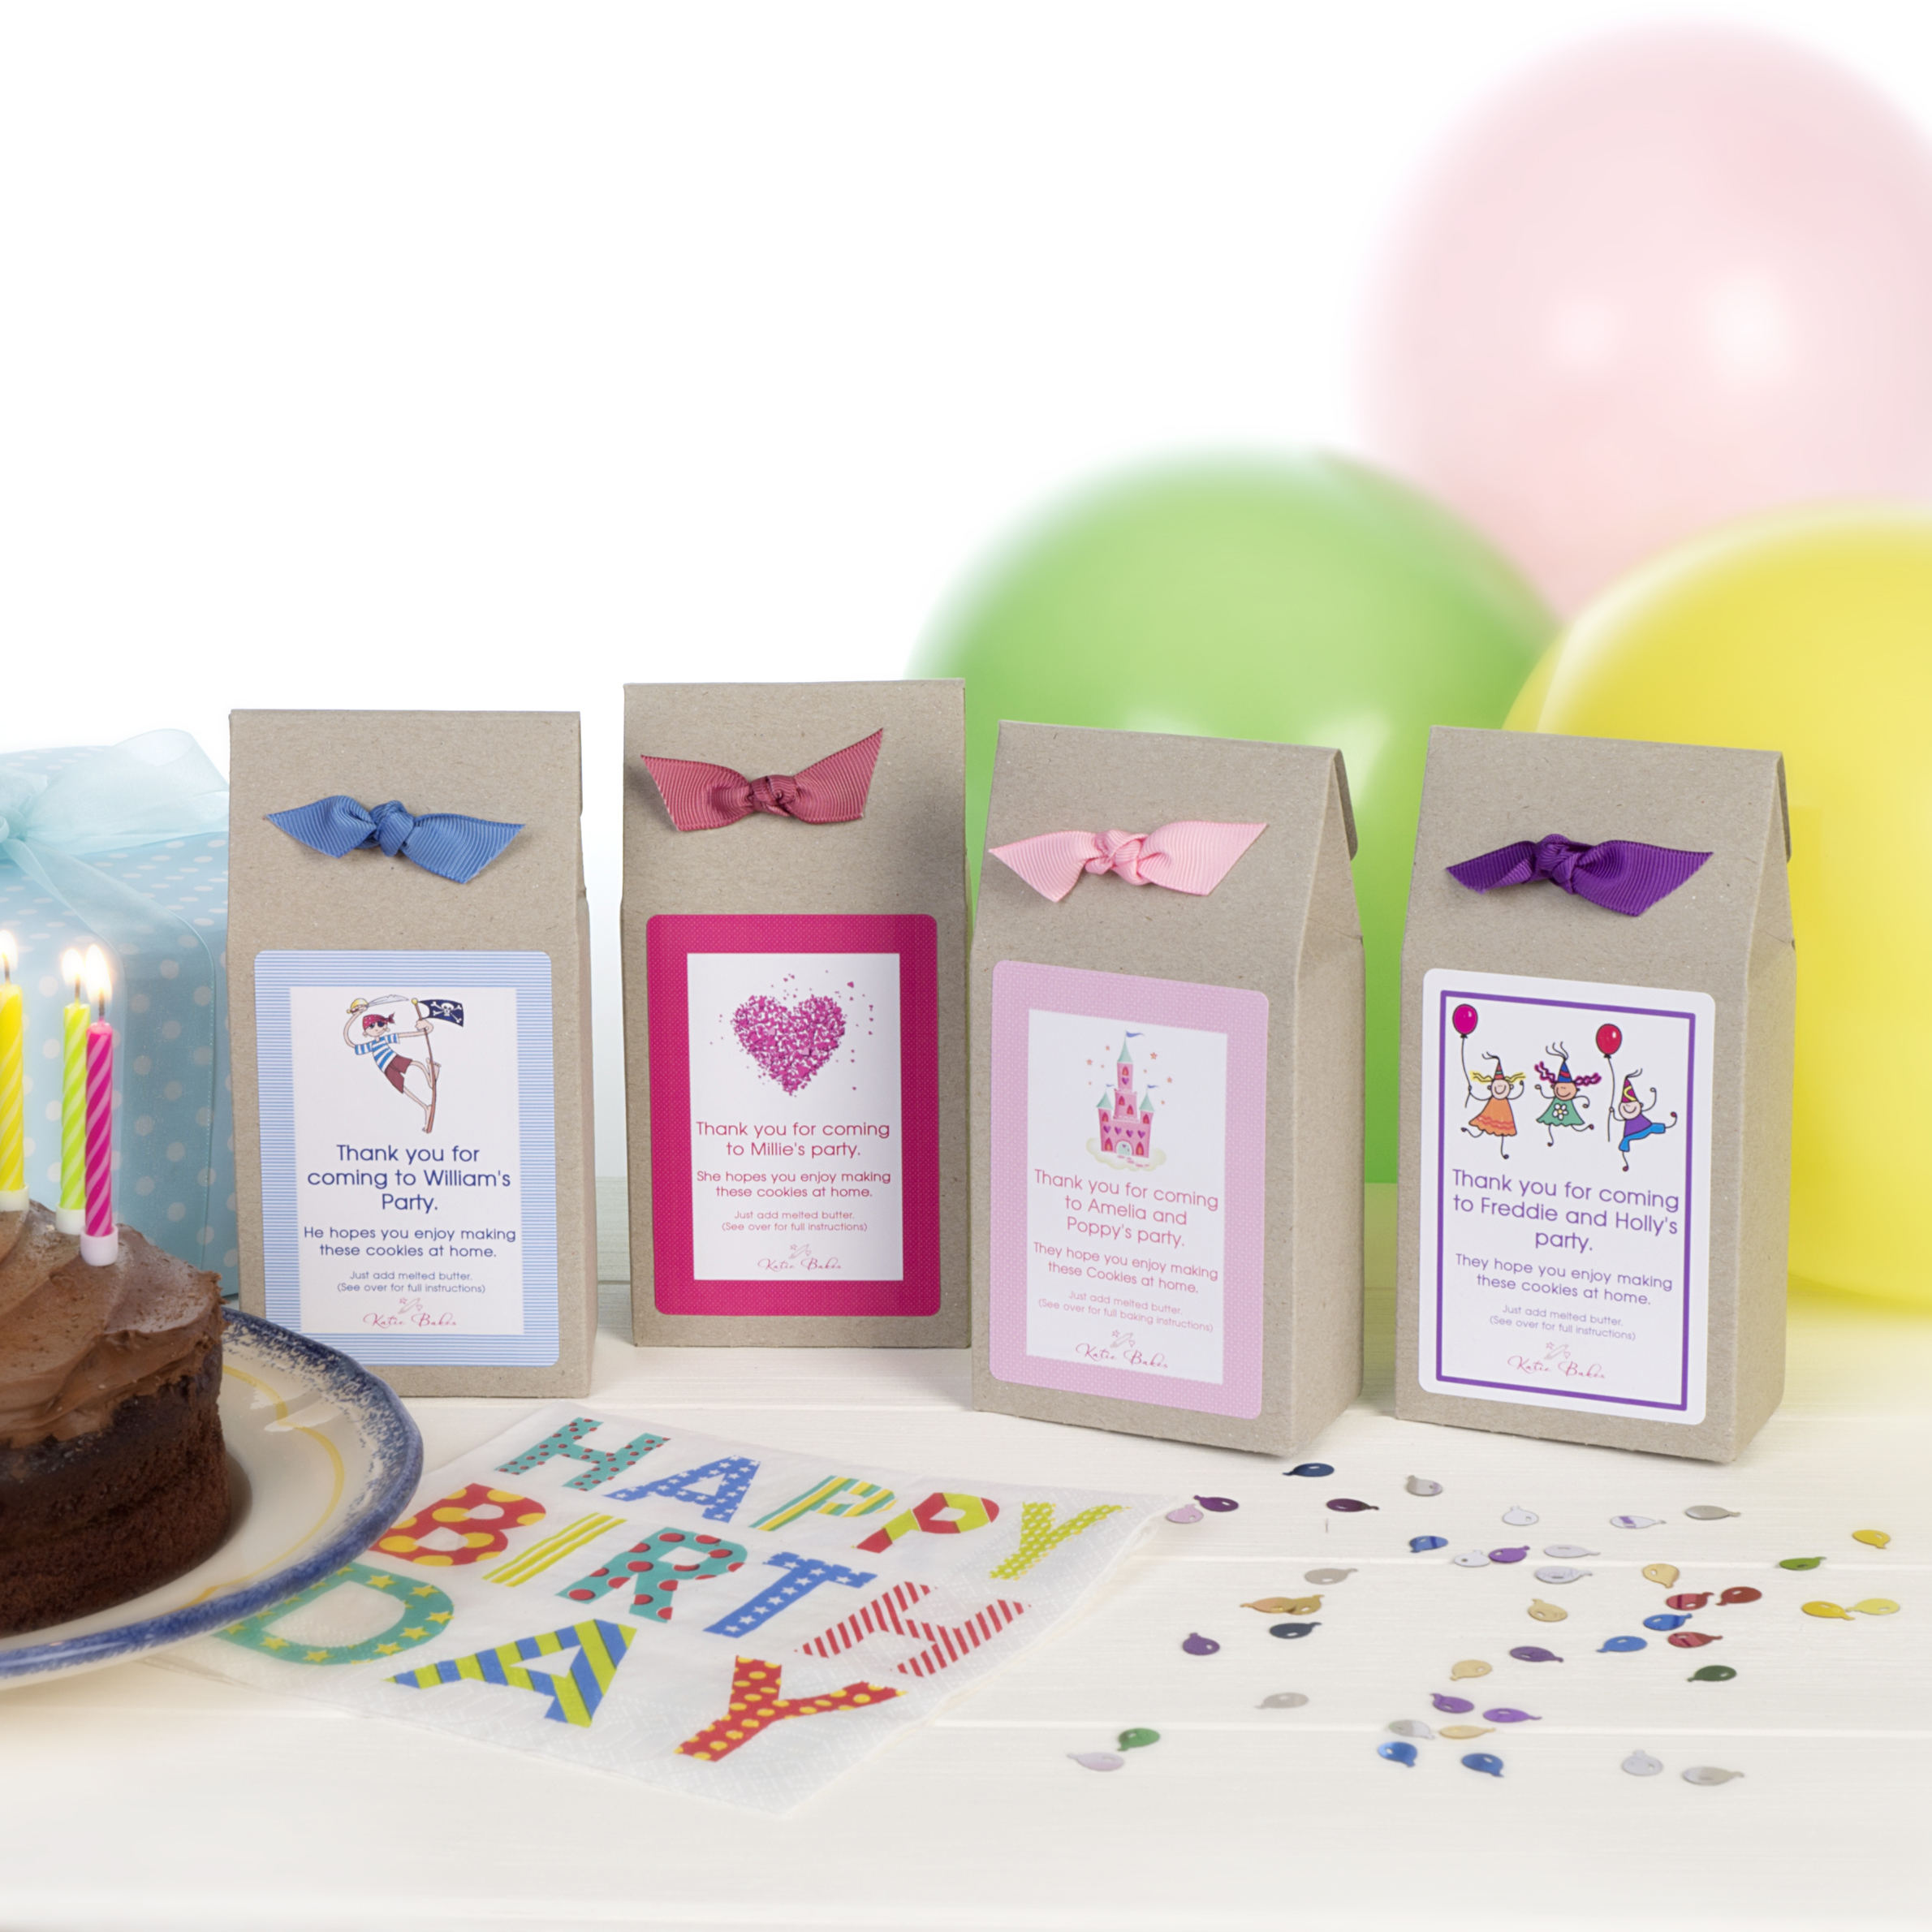 Party bag ideas; Cookie and brownie mix party favours